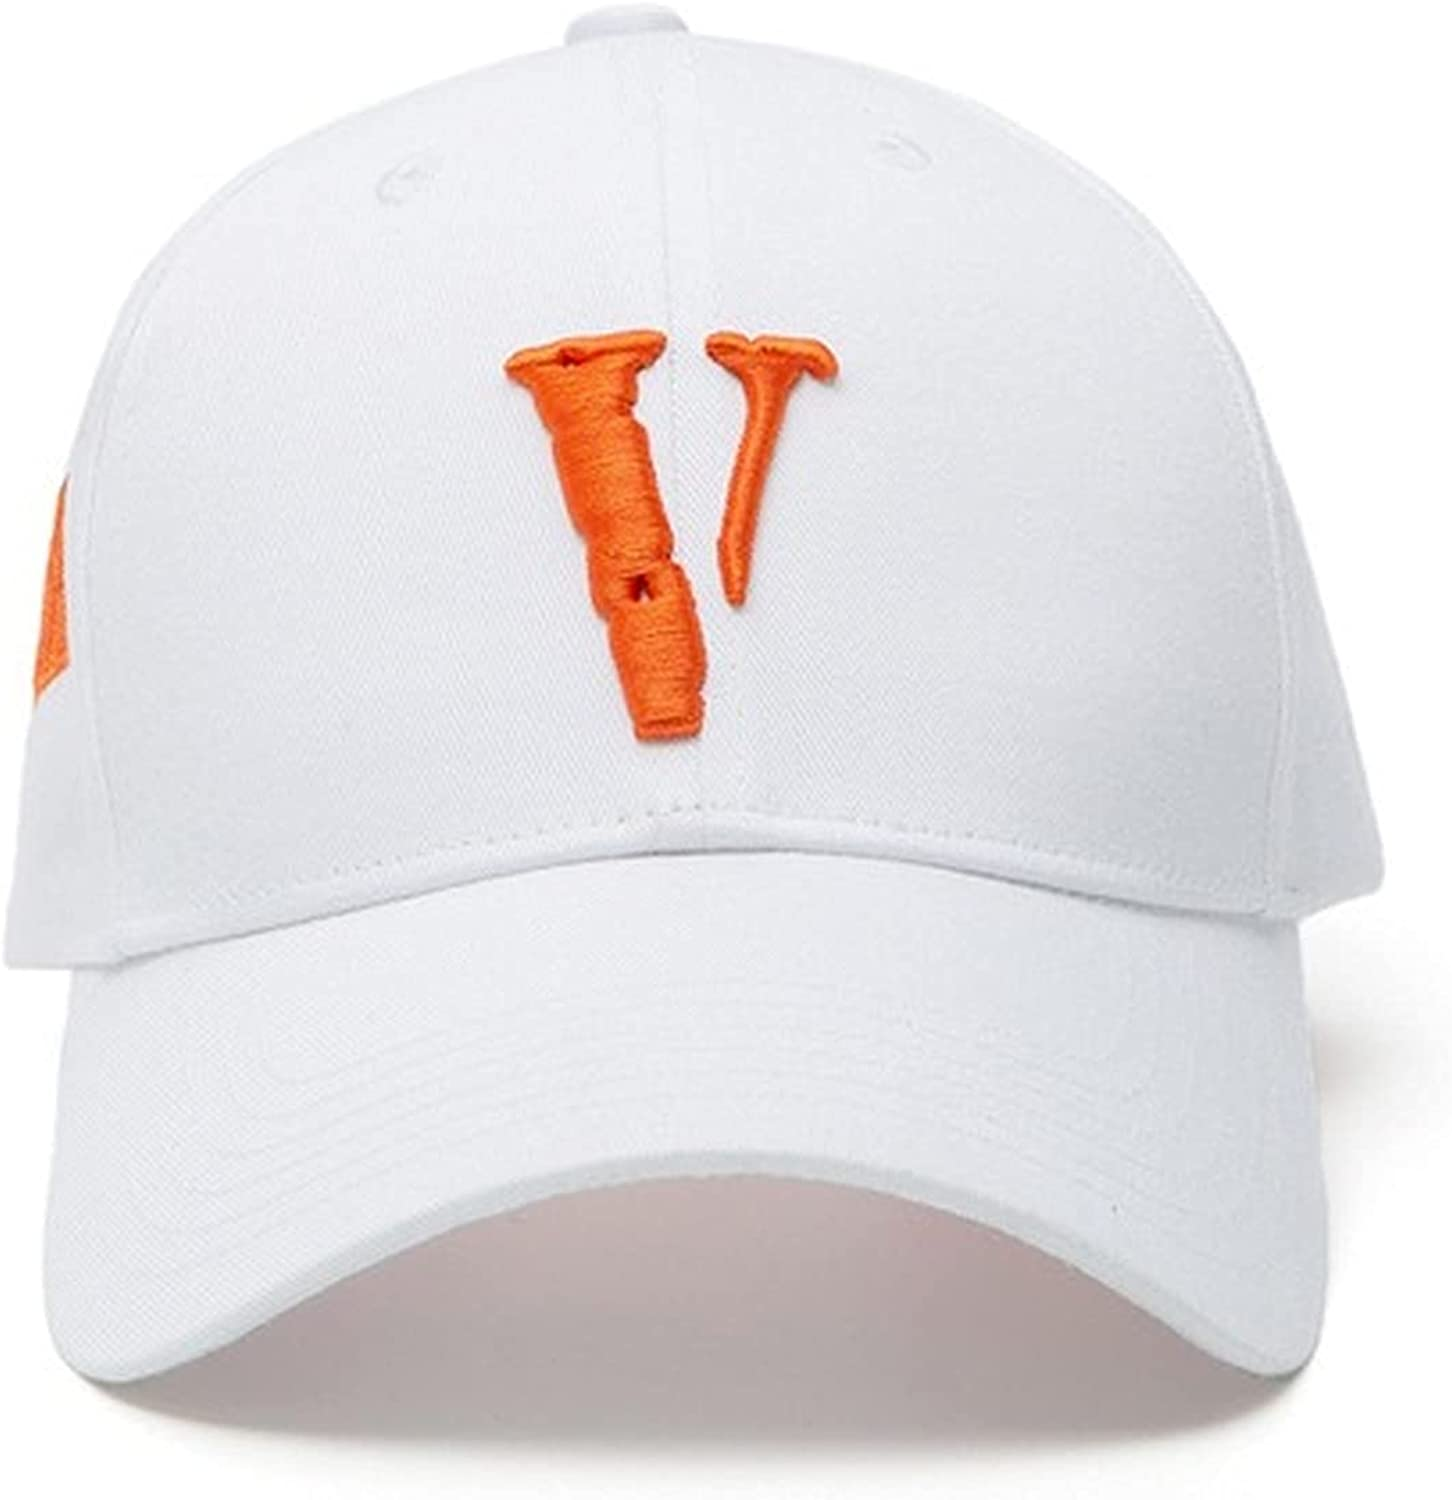 Aluo Vlone Men's and Women's Sports Cap Big V Letter Knitted Logo Joint Hat Fashion Casual Outdoor Sunshade Baseball Caps